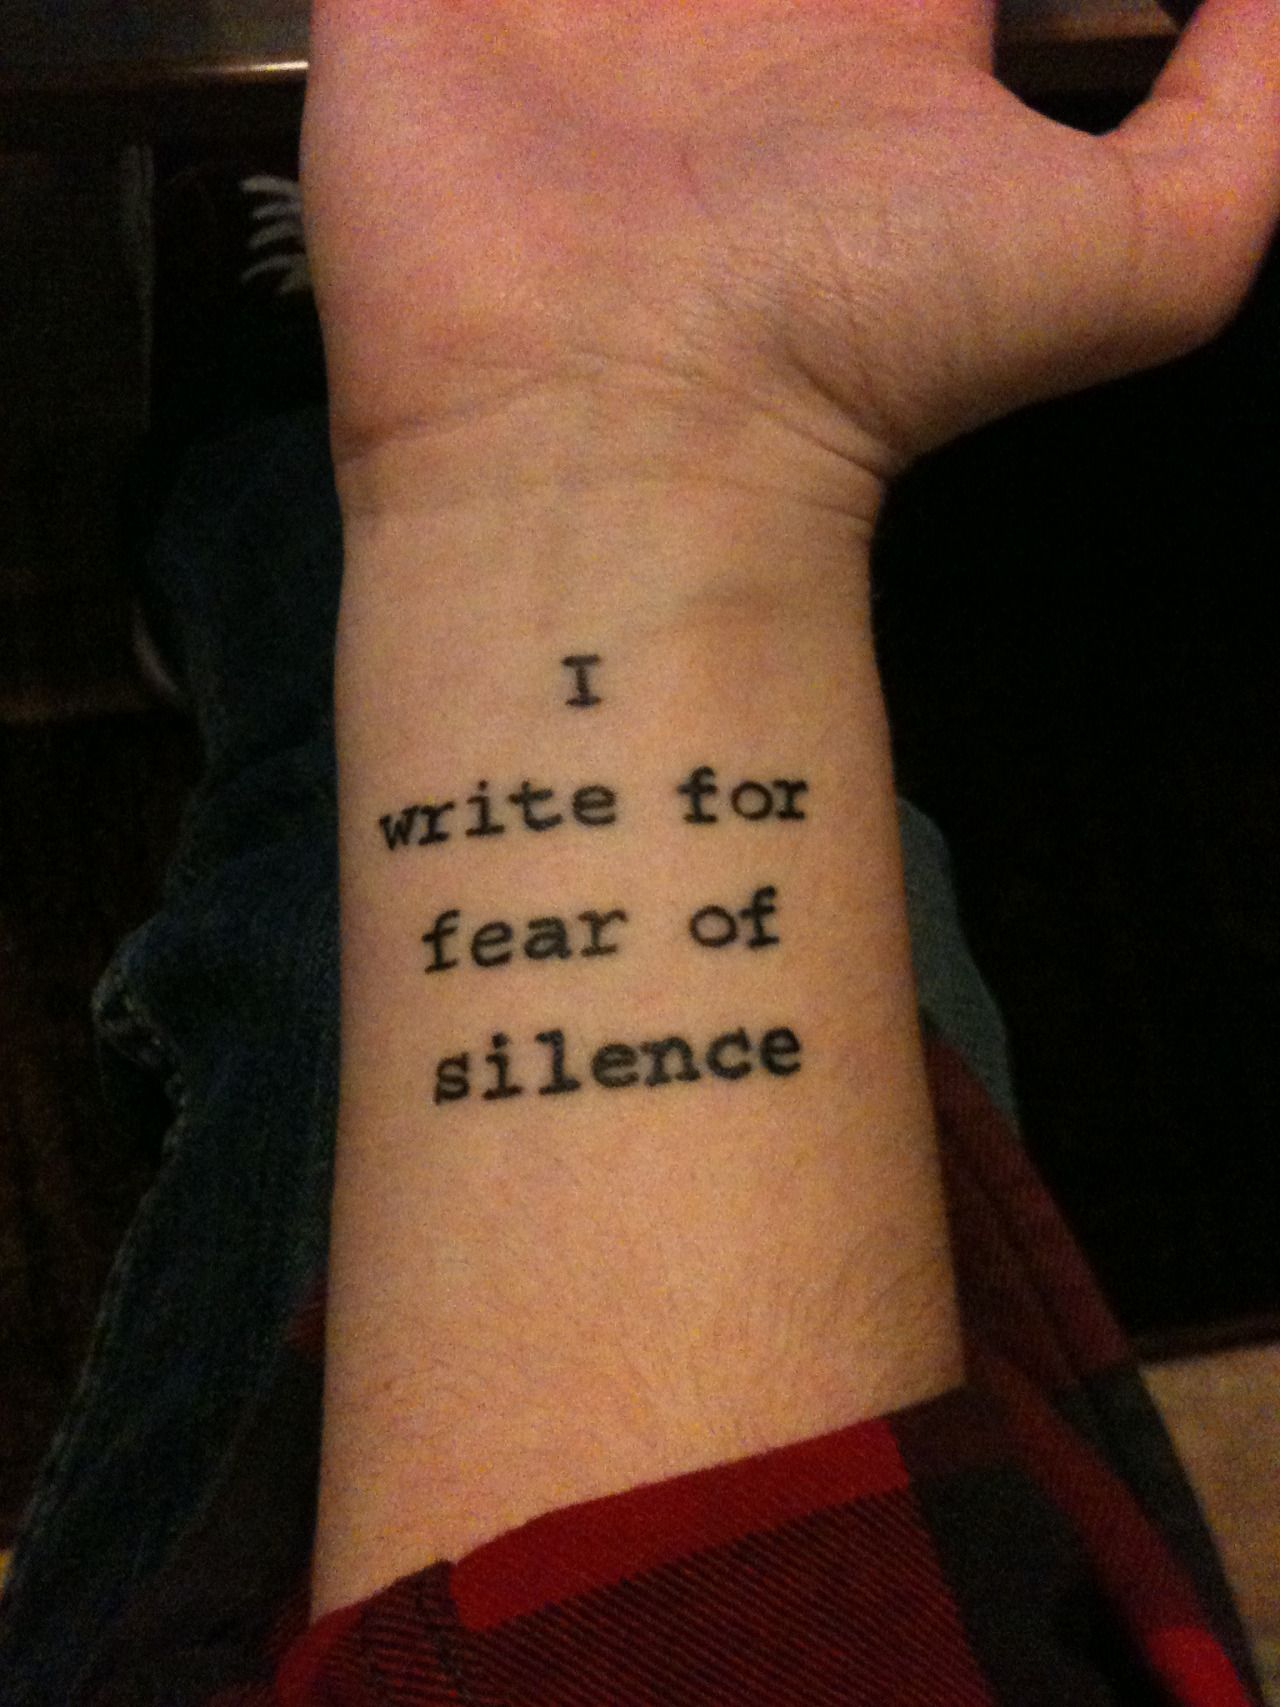 Tattoos Love Quotes I Write For Fear Of Silence' Tattooi Love This Idea Especially